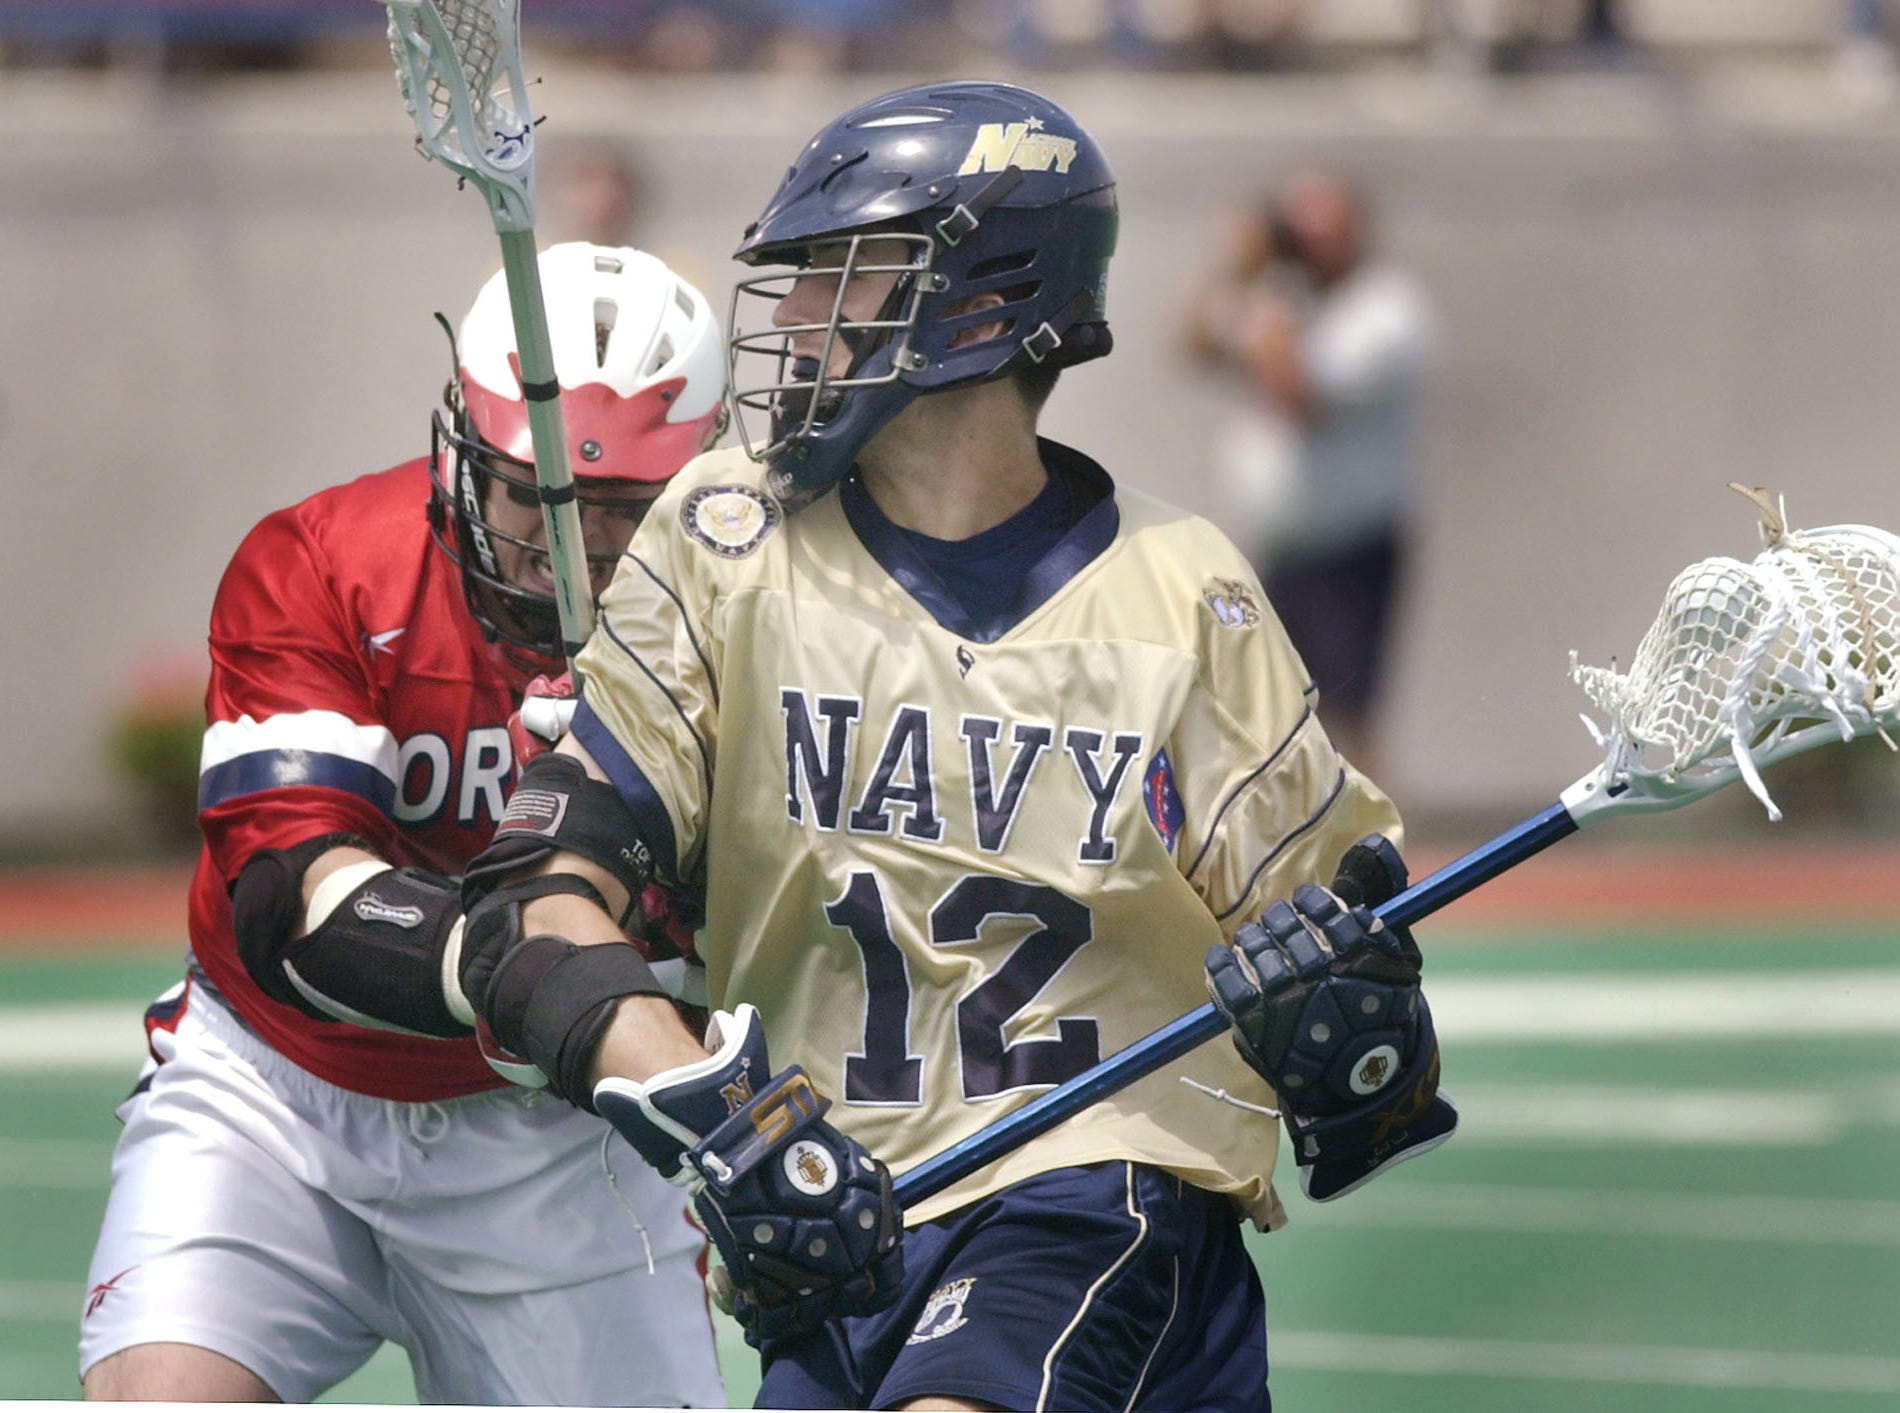 Navy's Graham Gill (12) drives against the Cornell defense during the second quarter of the NCAA Div. I Lacrosse Championship quarterfinals in Ithaca, N.Y., Sunday, May 23, 2004. Navy won, 6-5.